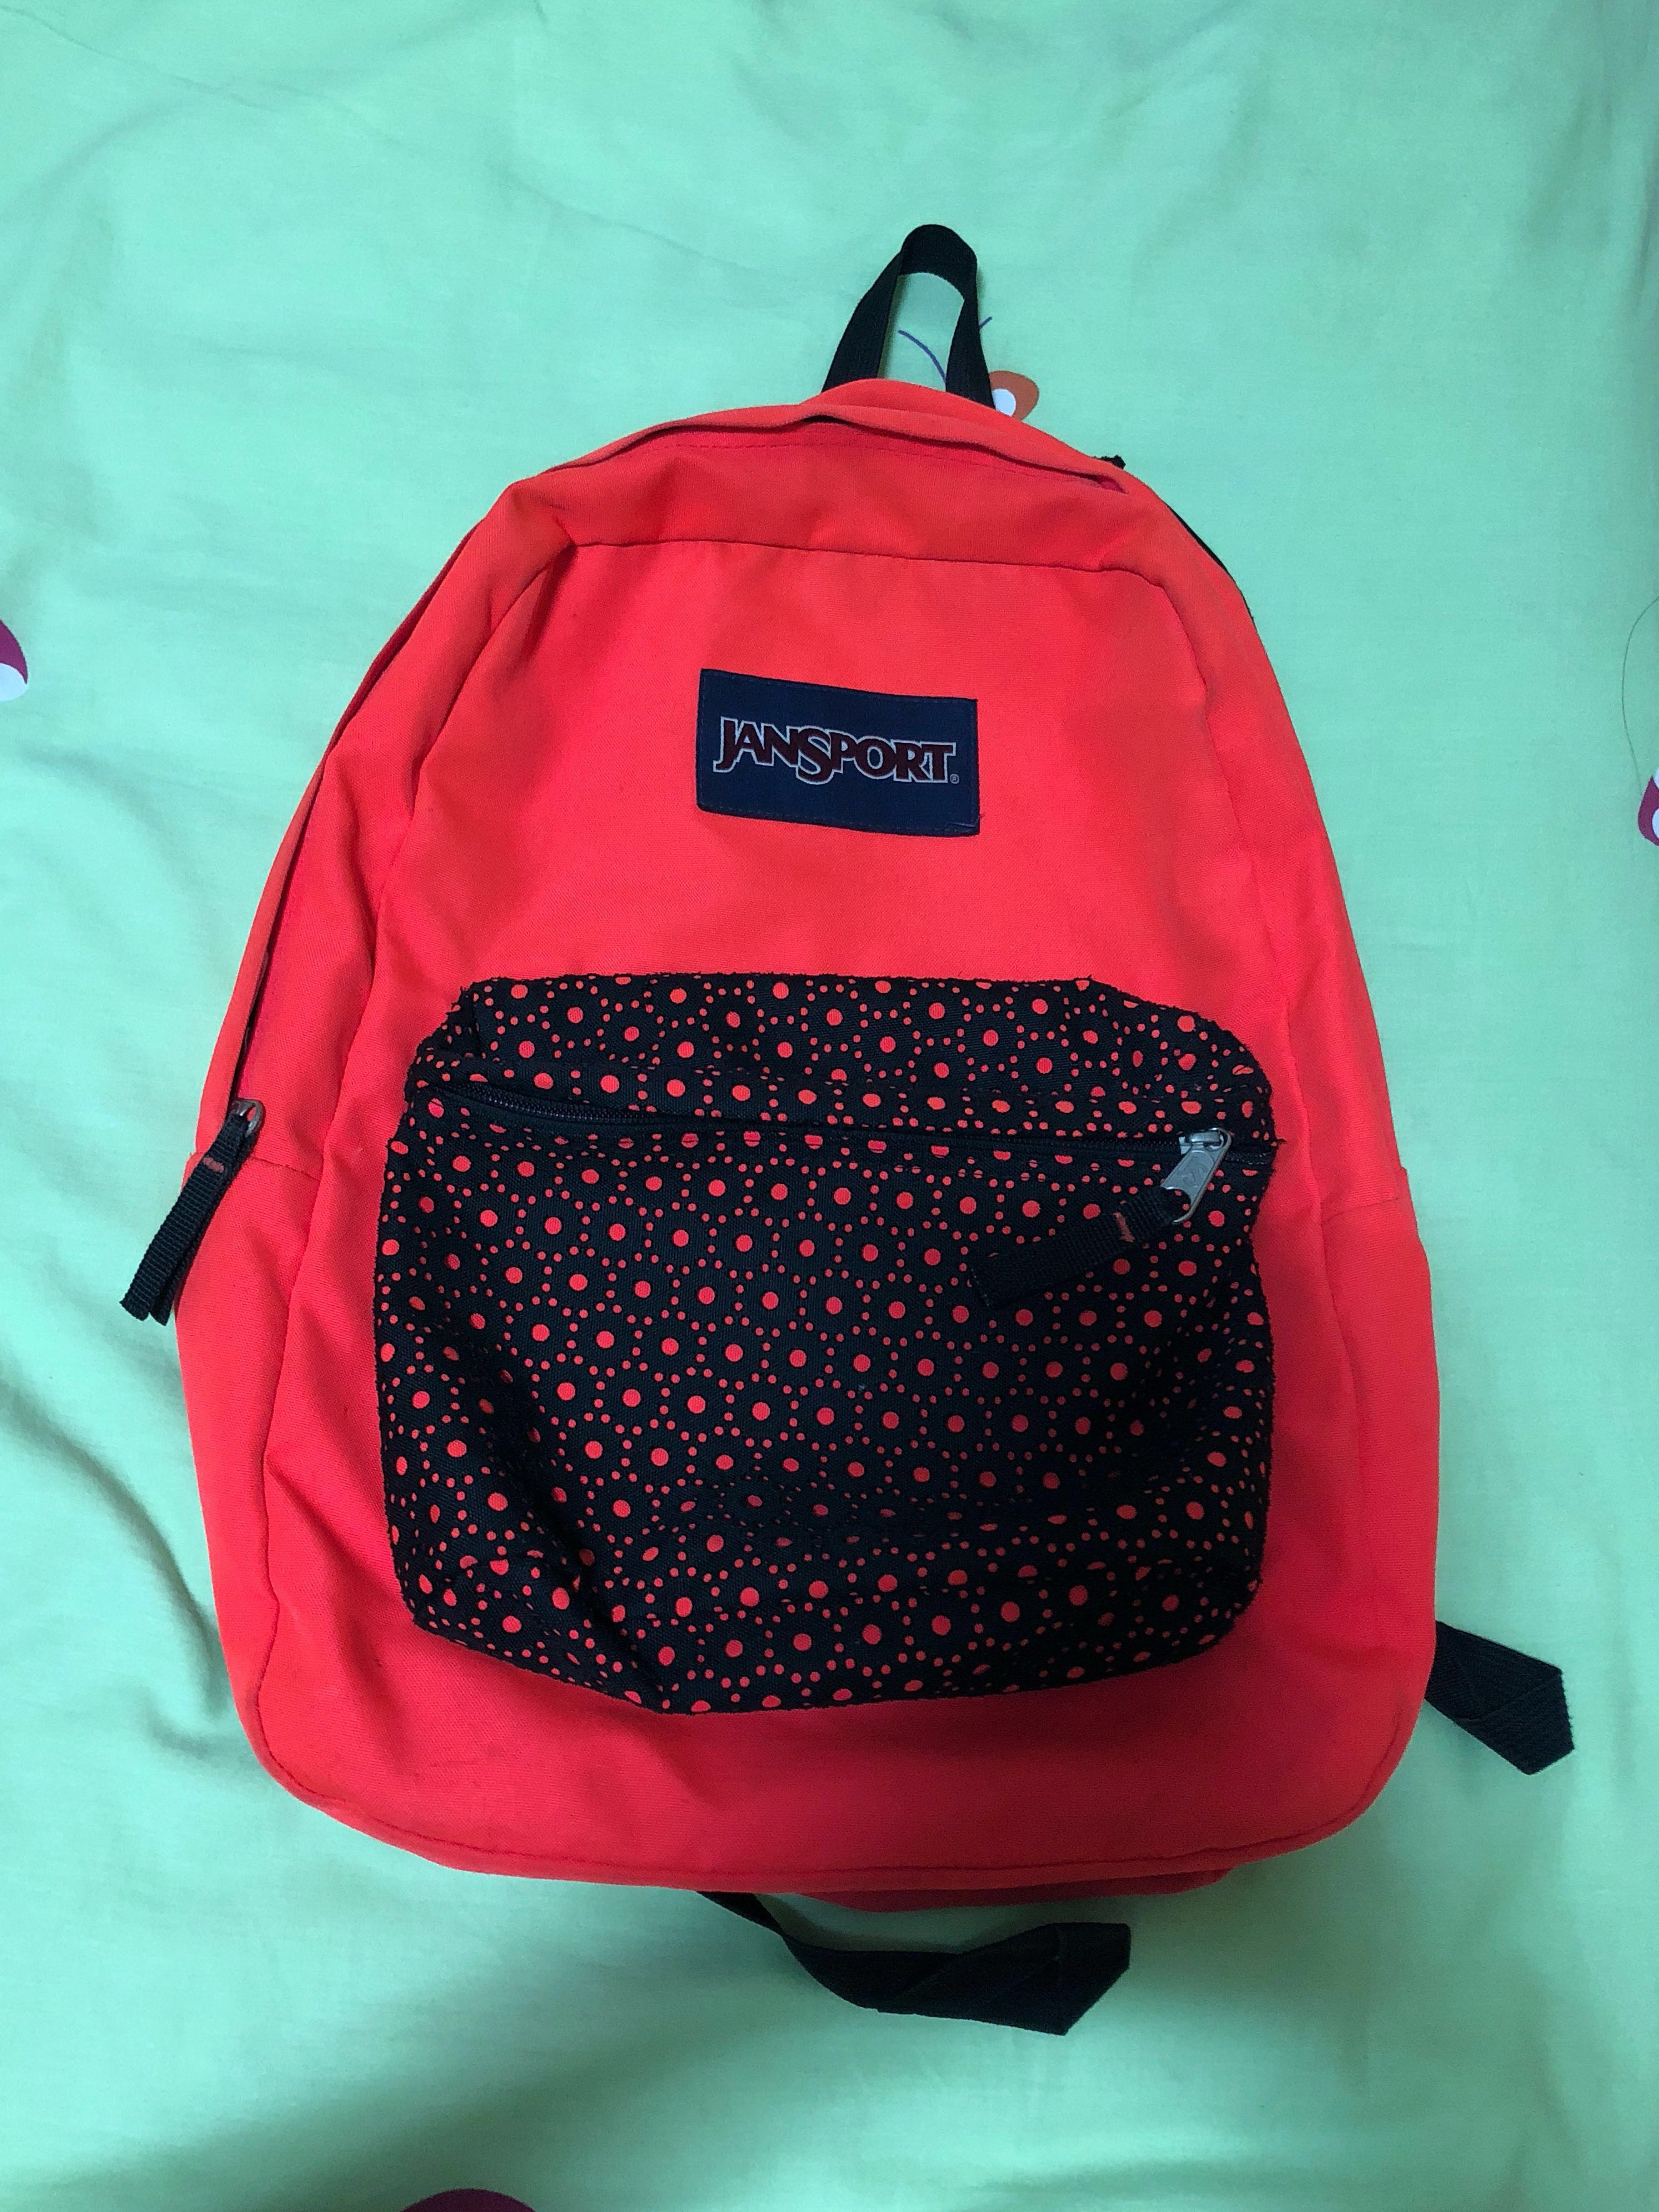 Where To Buy Jansport Bags In Singapore